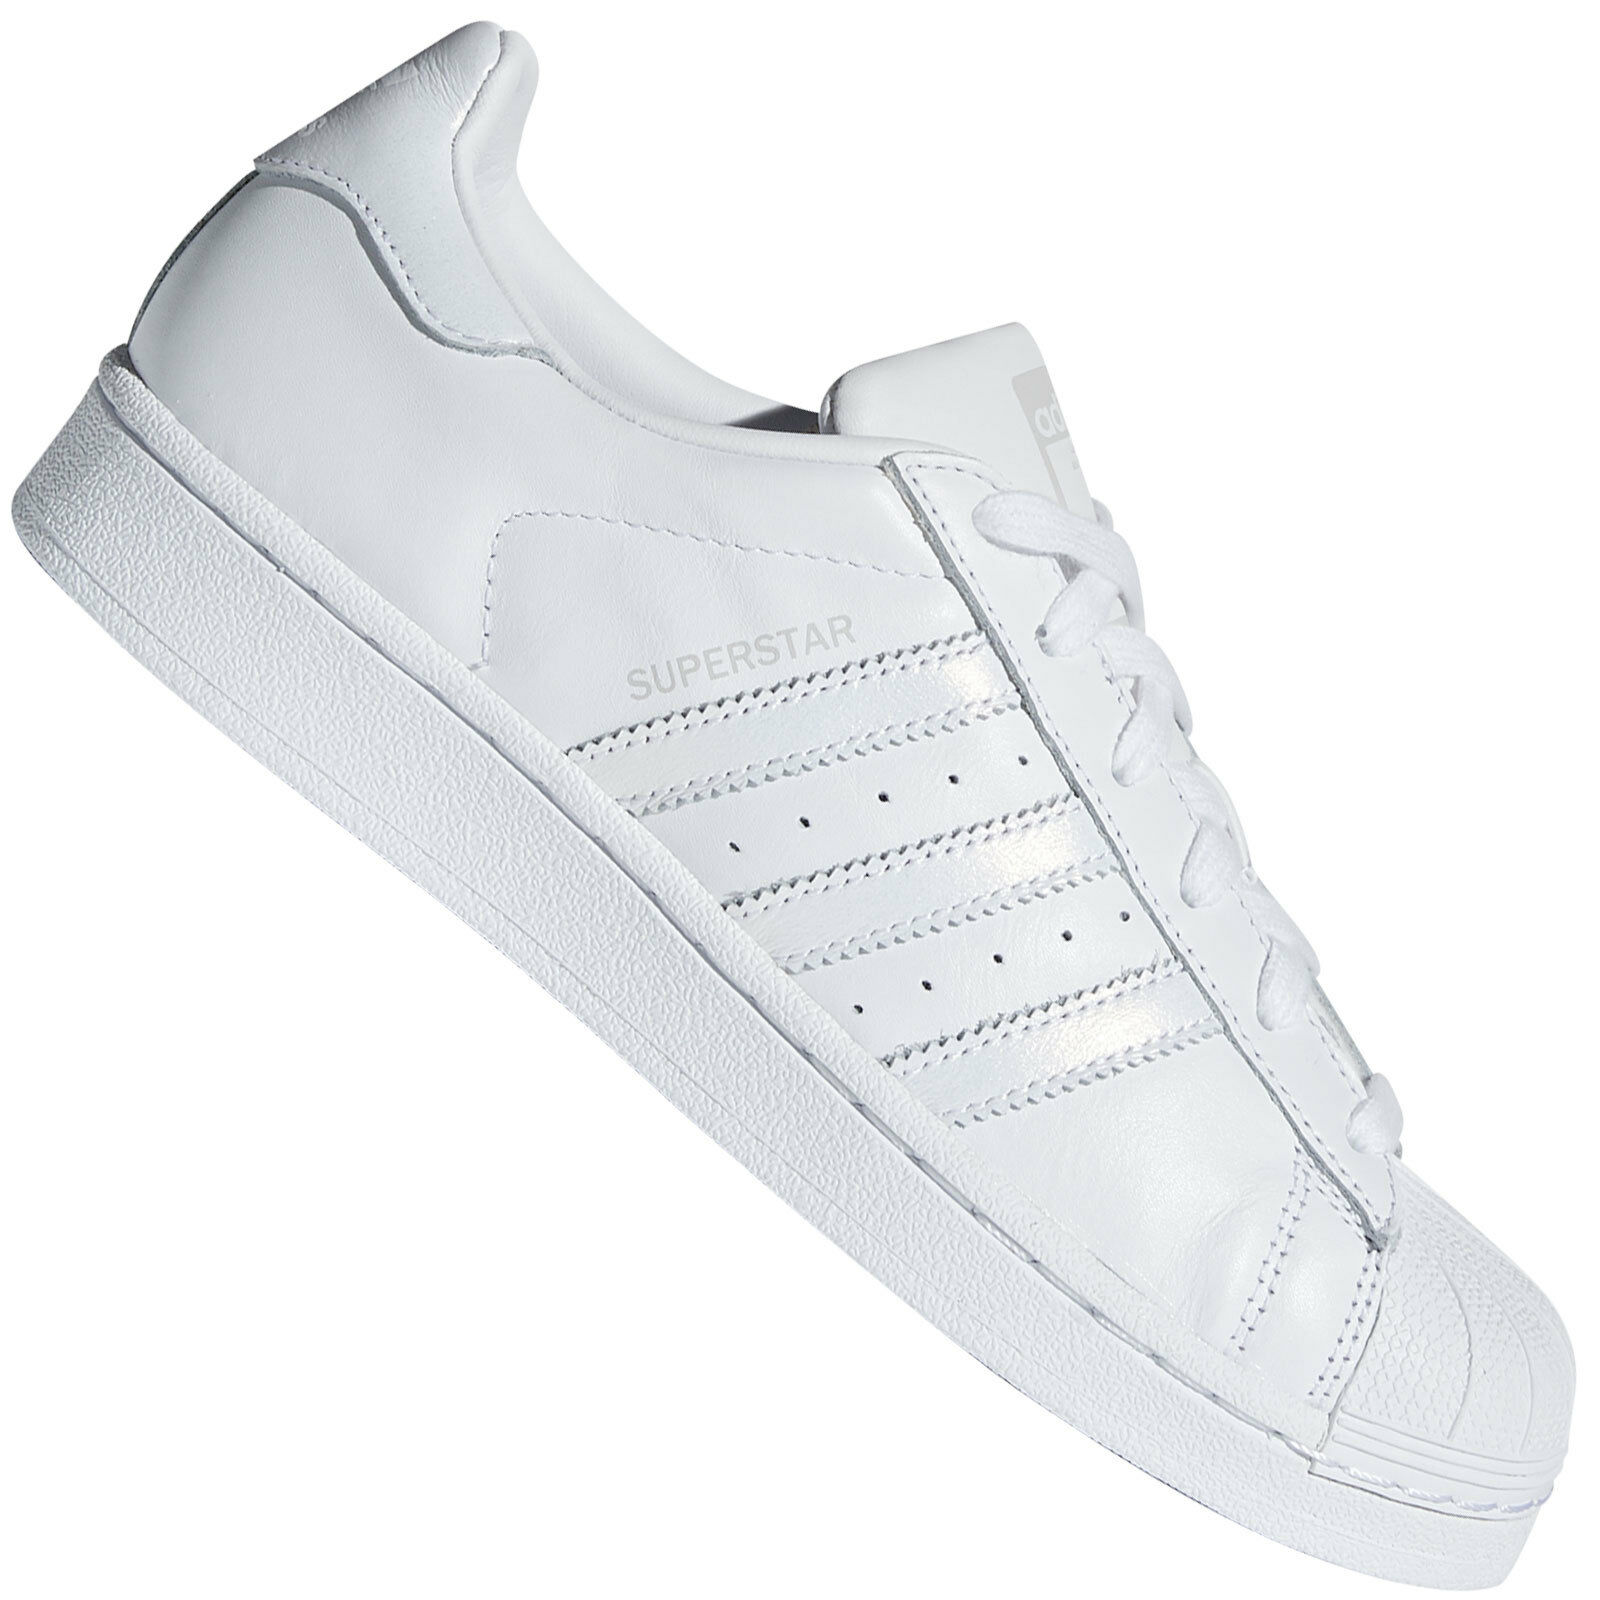 Adidas Originals Superstar W Sneaker Women's shoes Trainers Pearl Low shoes